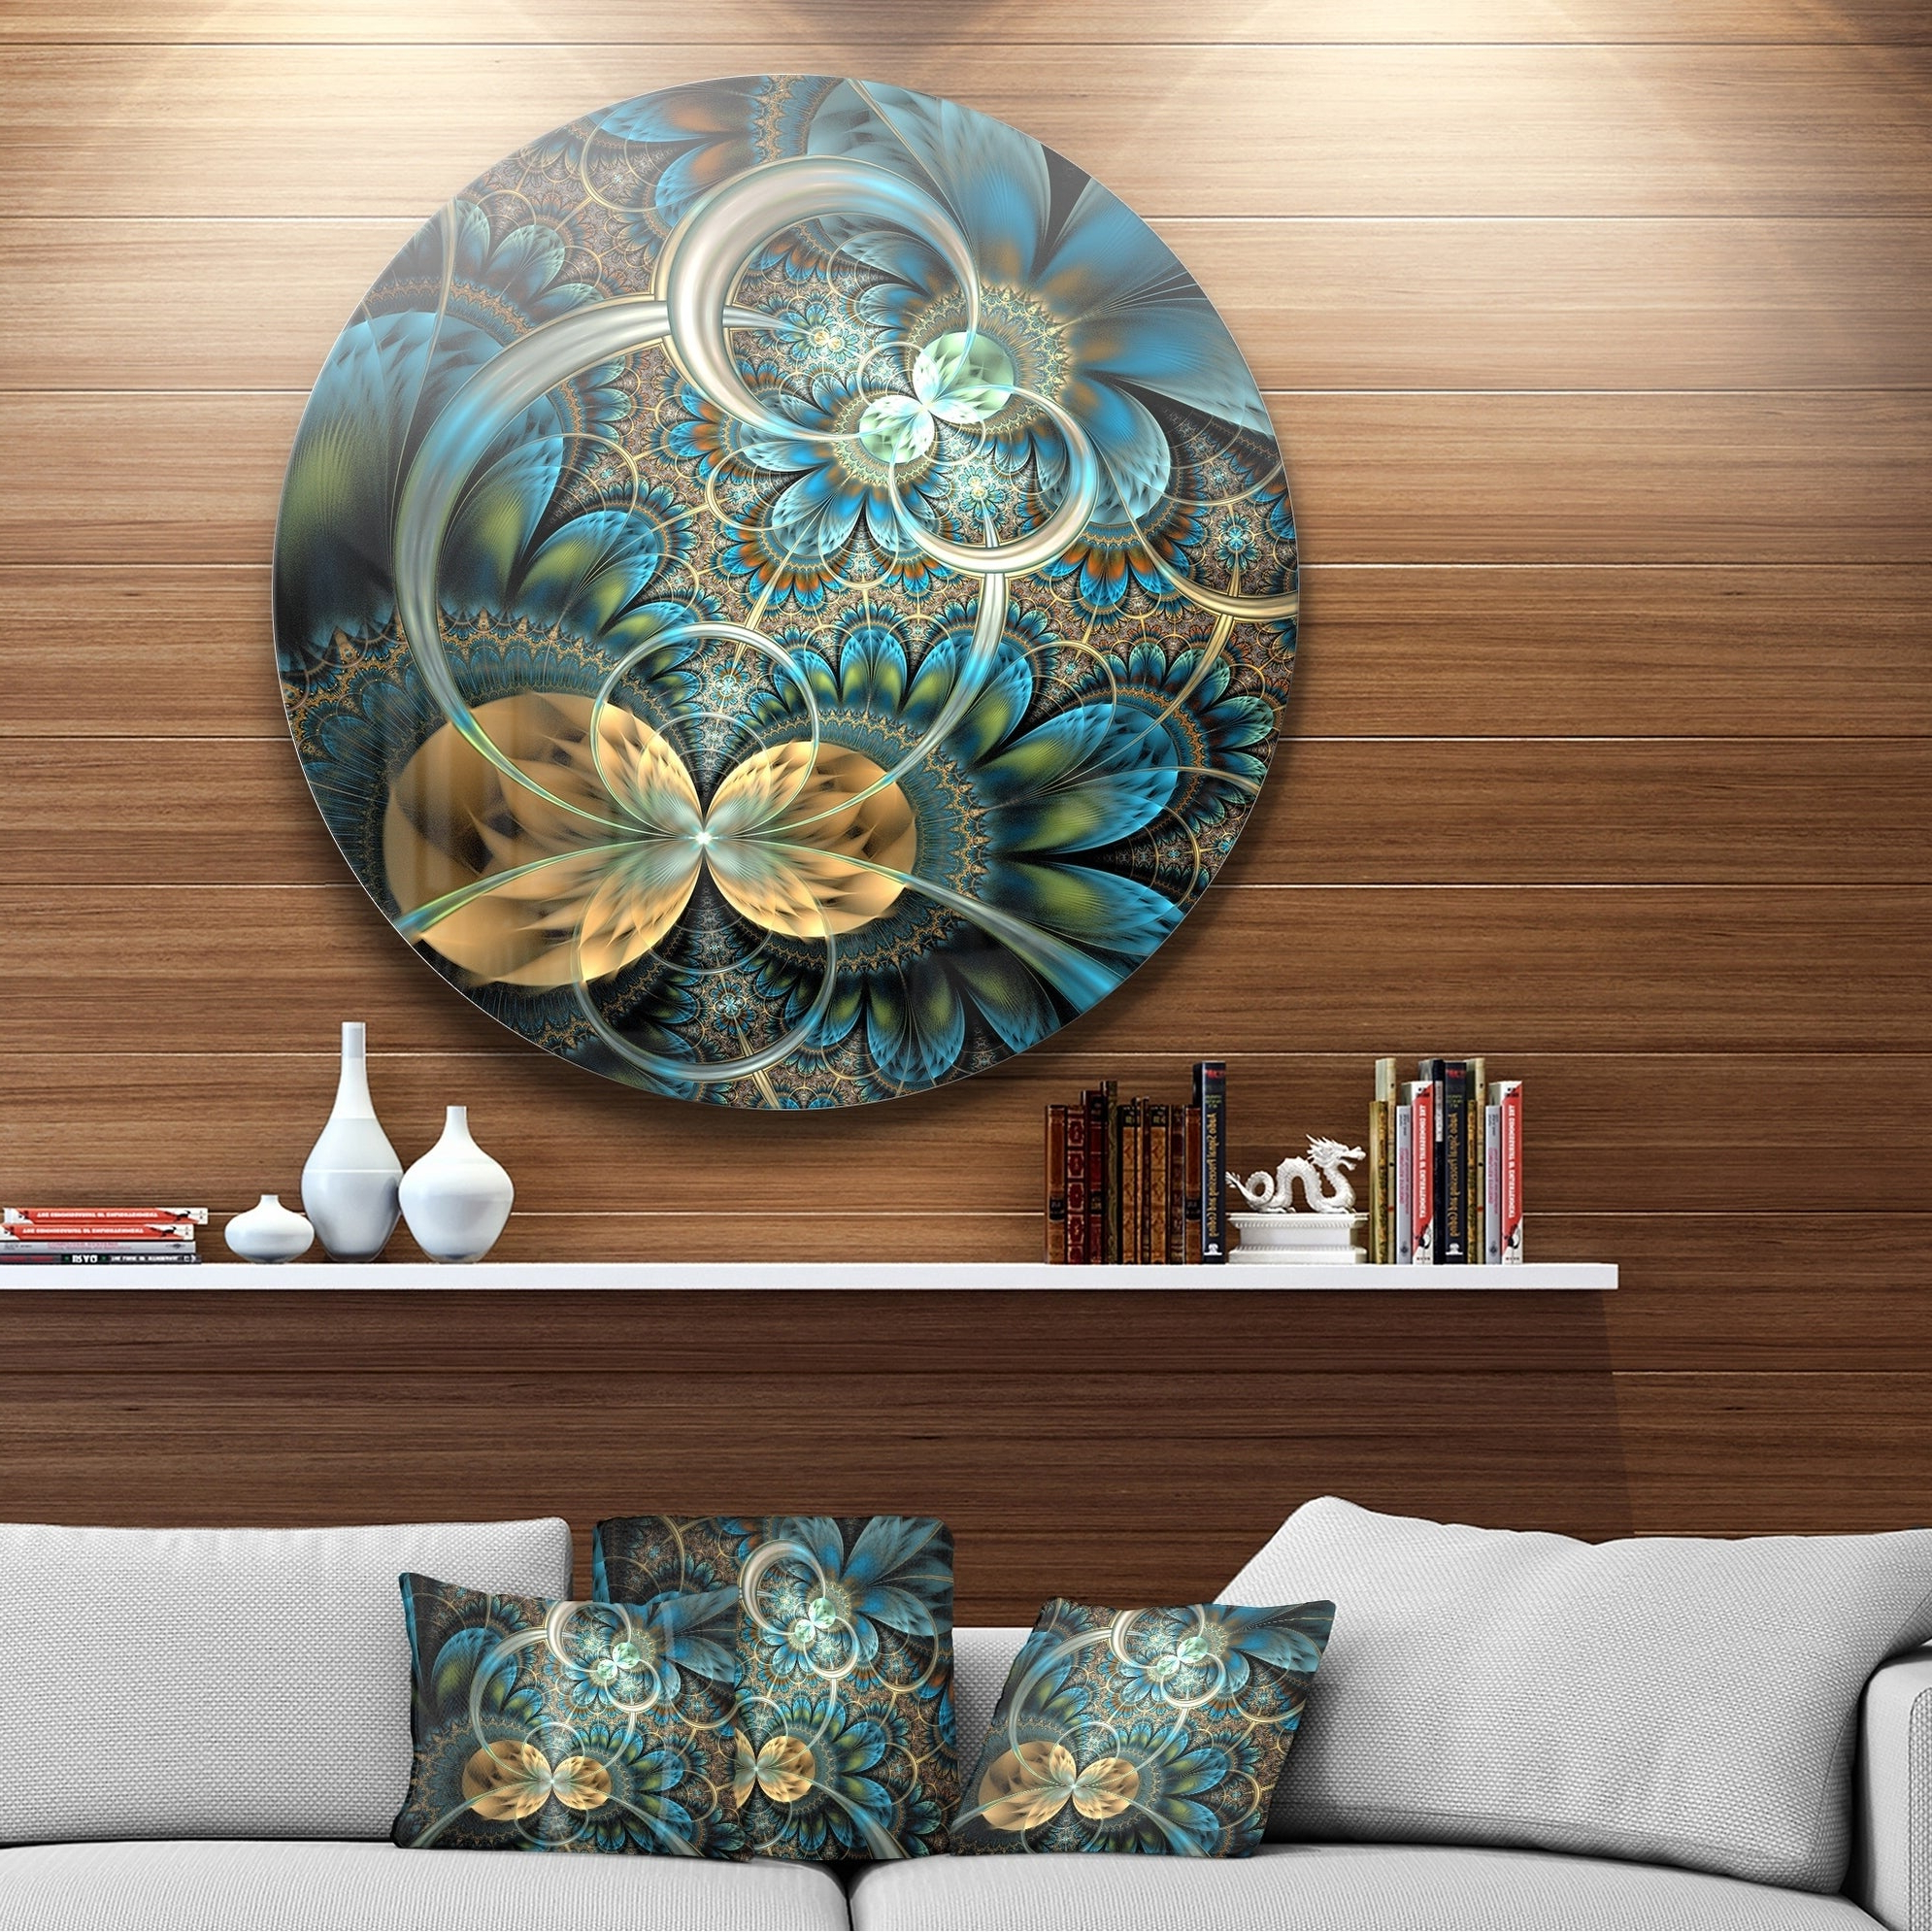 Find Great Art Gallery Deals Shopping At Overstock (View 6 of 20)